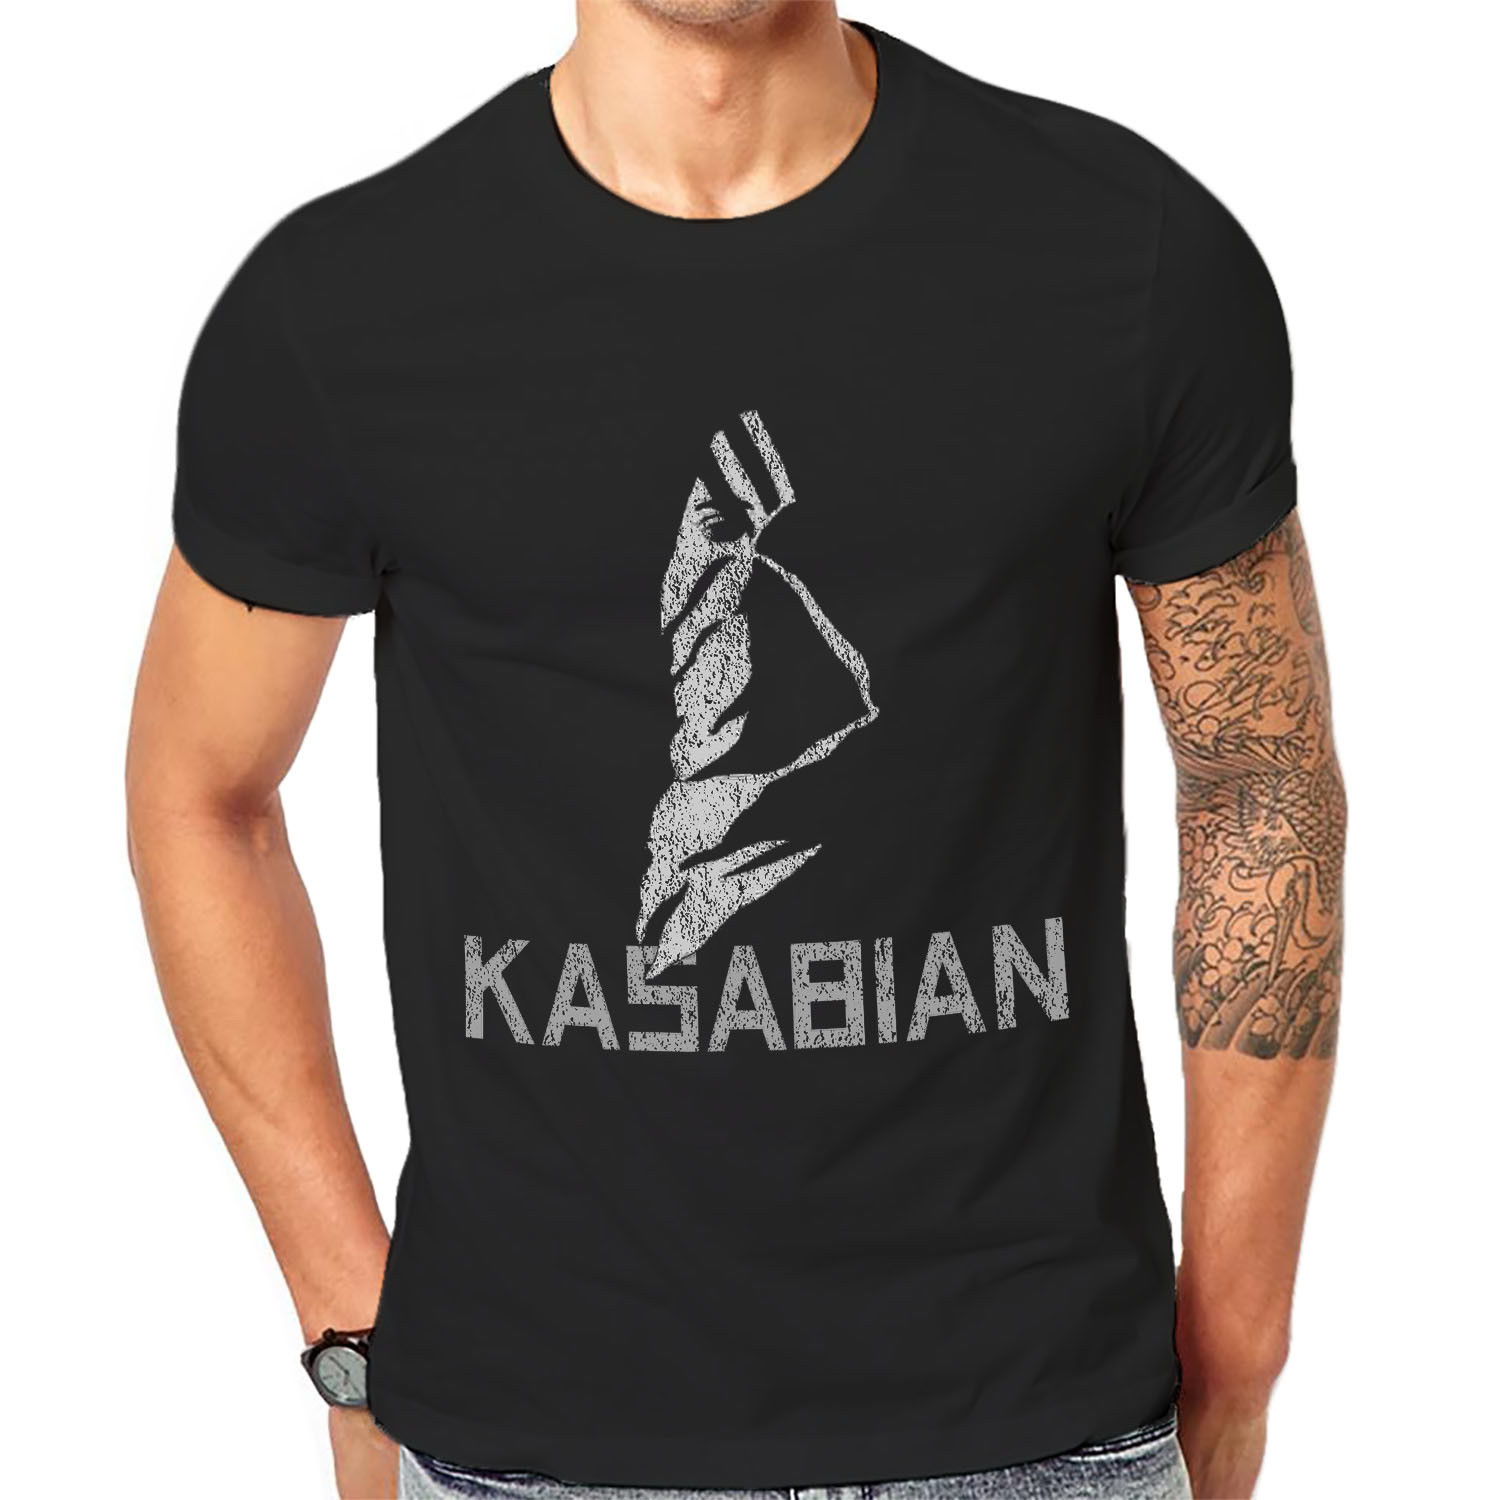 Kasabian Rock Band T Shirt New Cool Mens Graphic Print Unisex Tee 1